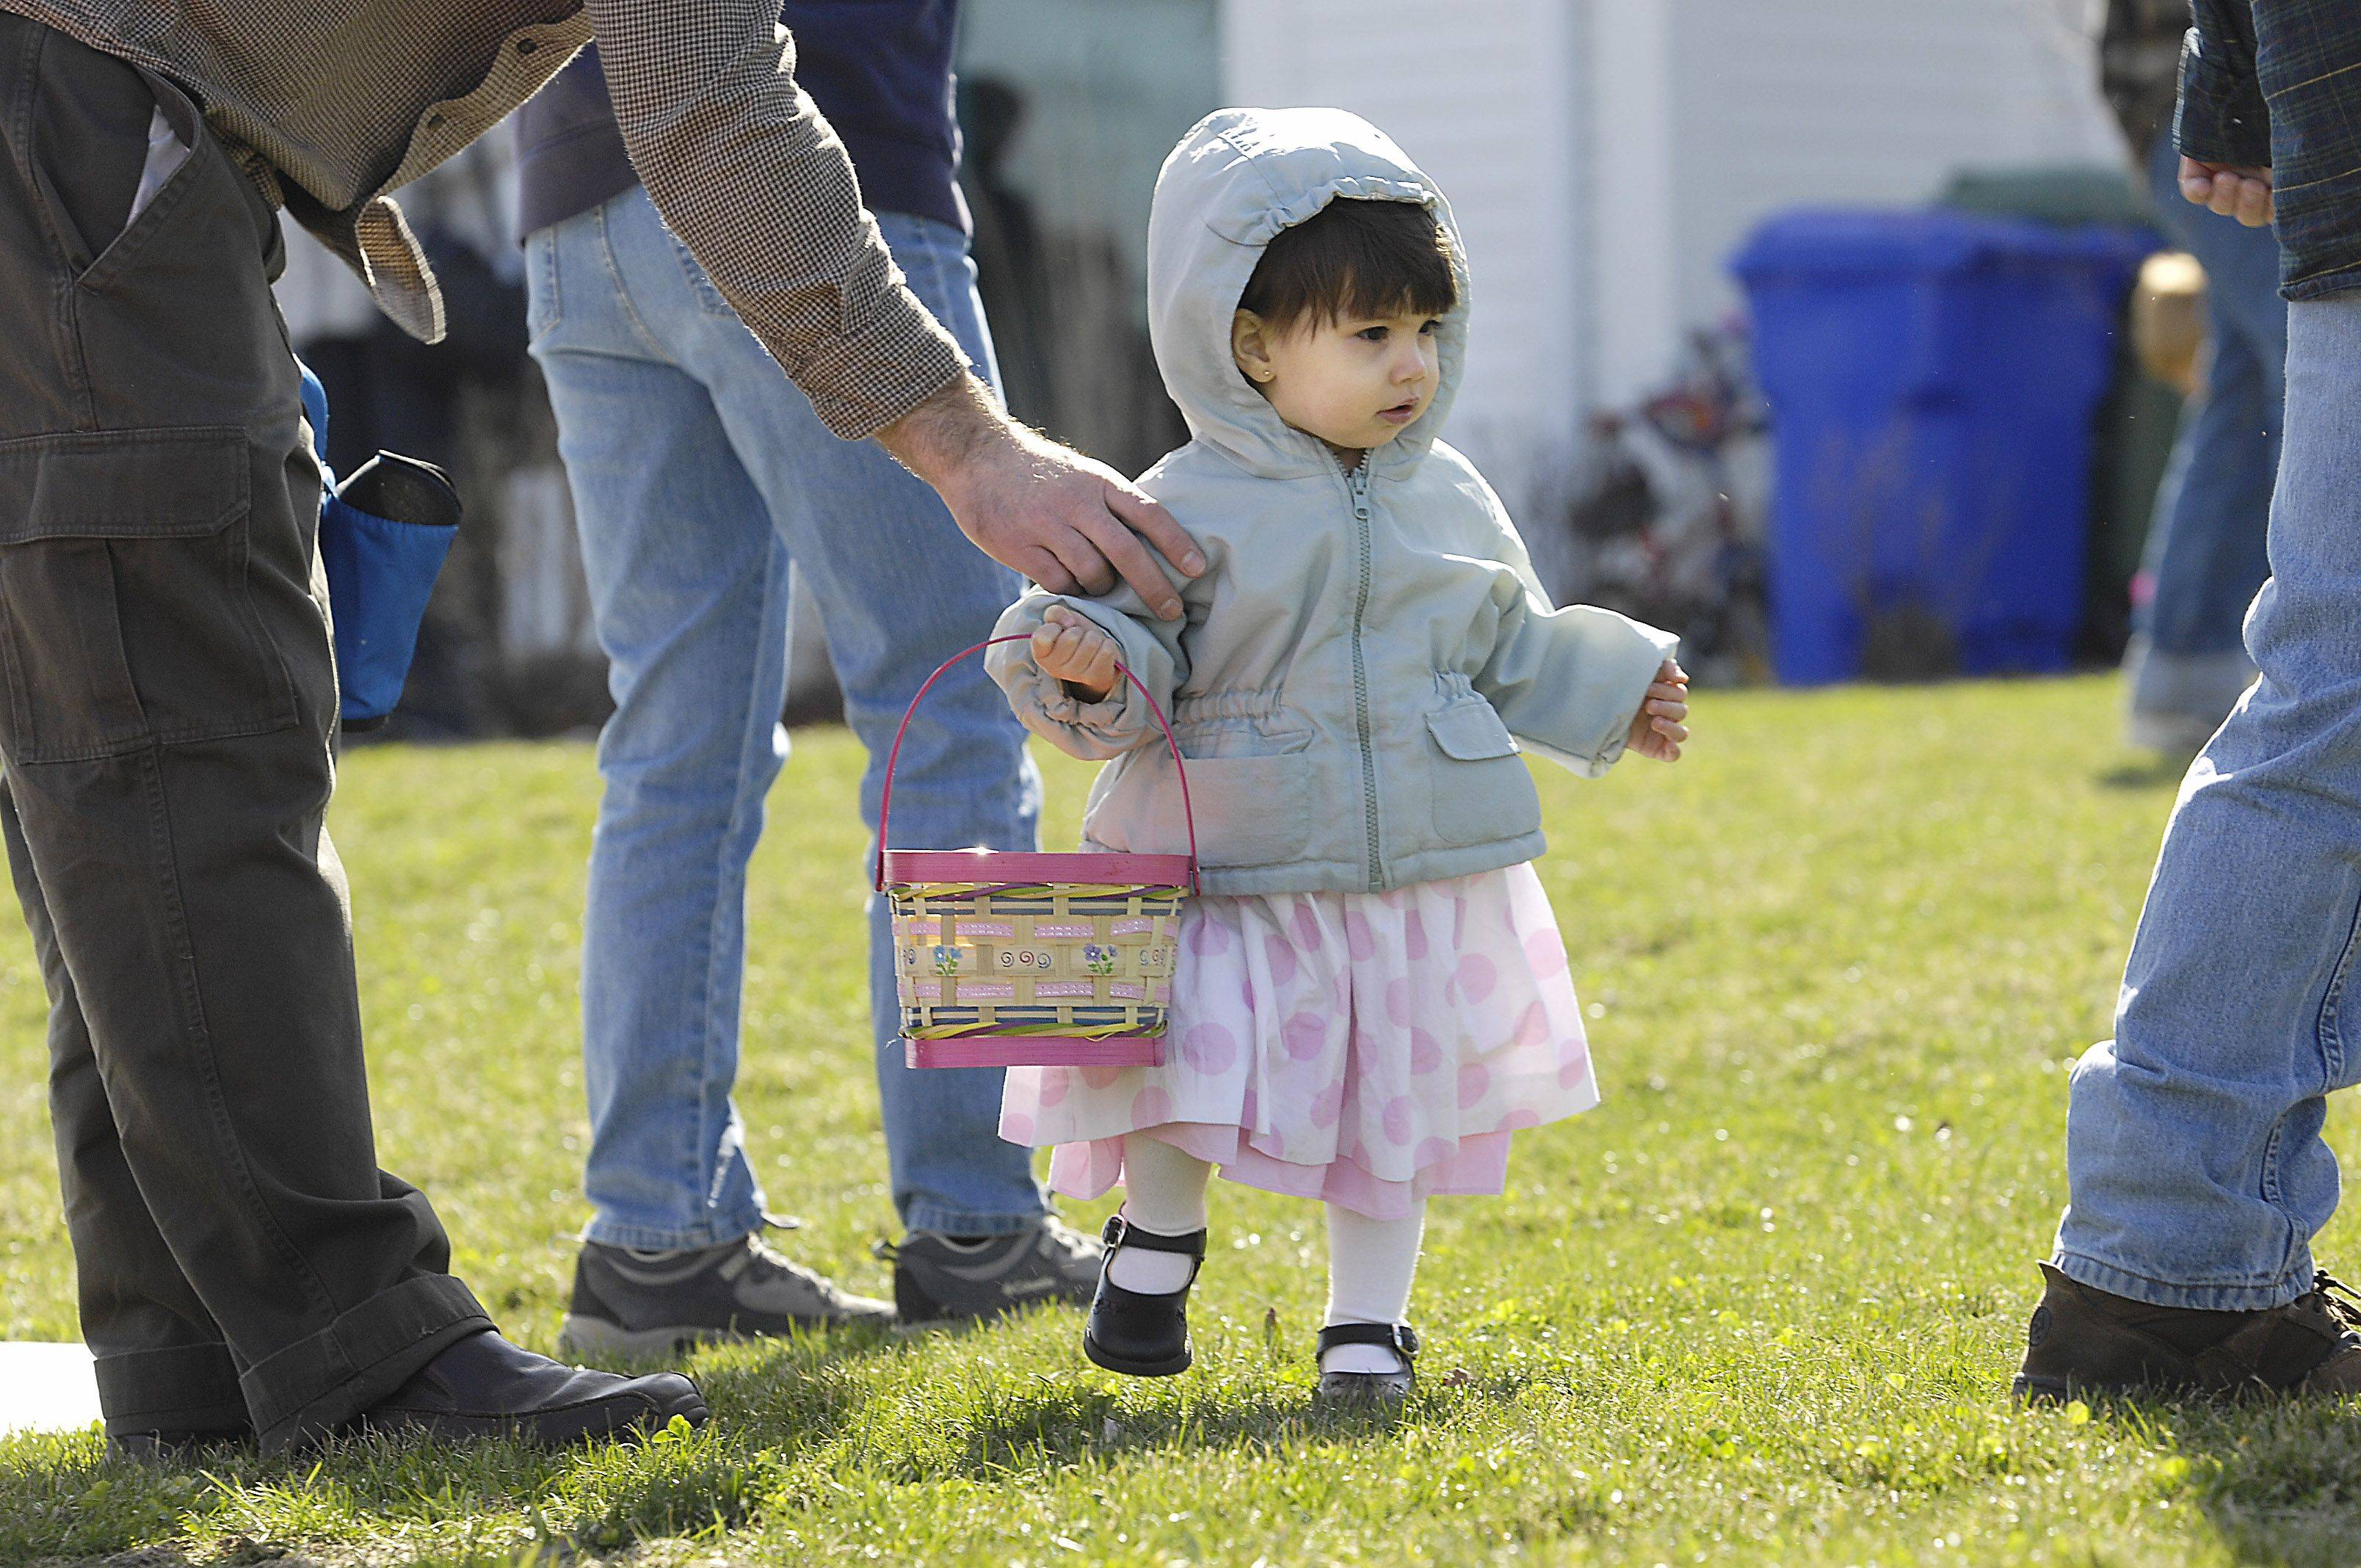 John Starks/jstarks@dailyherald.com ¬ 18-month-old Samantha carries a basket as big as she can handle during an egg hunt Sunday at Faith Baptist Church at Mill Creek in Geneva. She was with her dad Tom Sipes of Geneva.